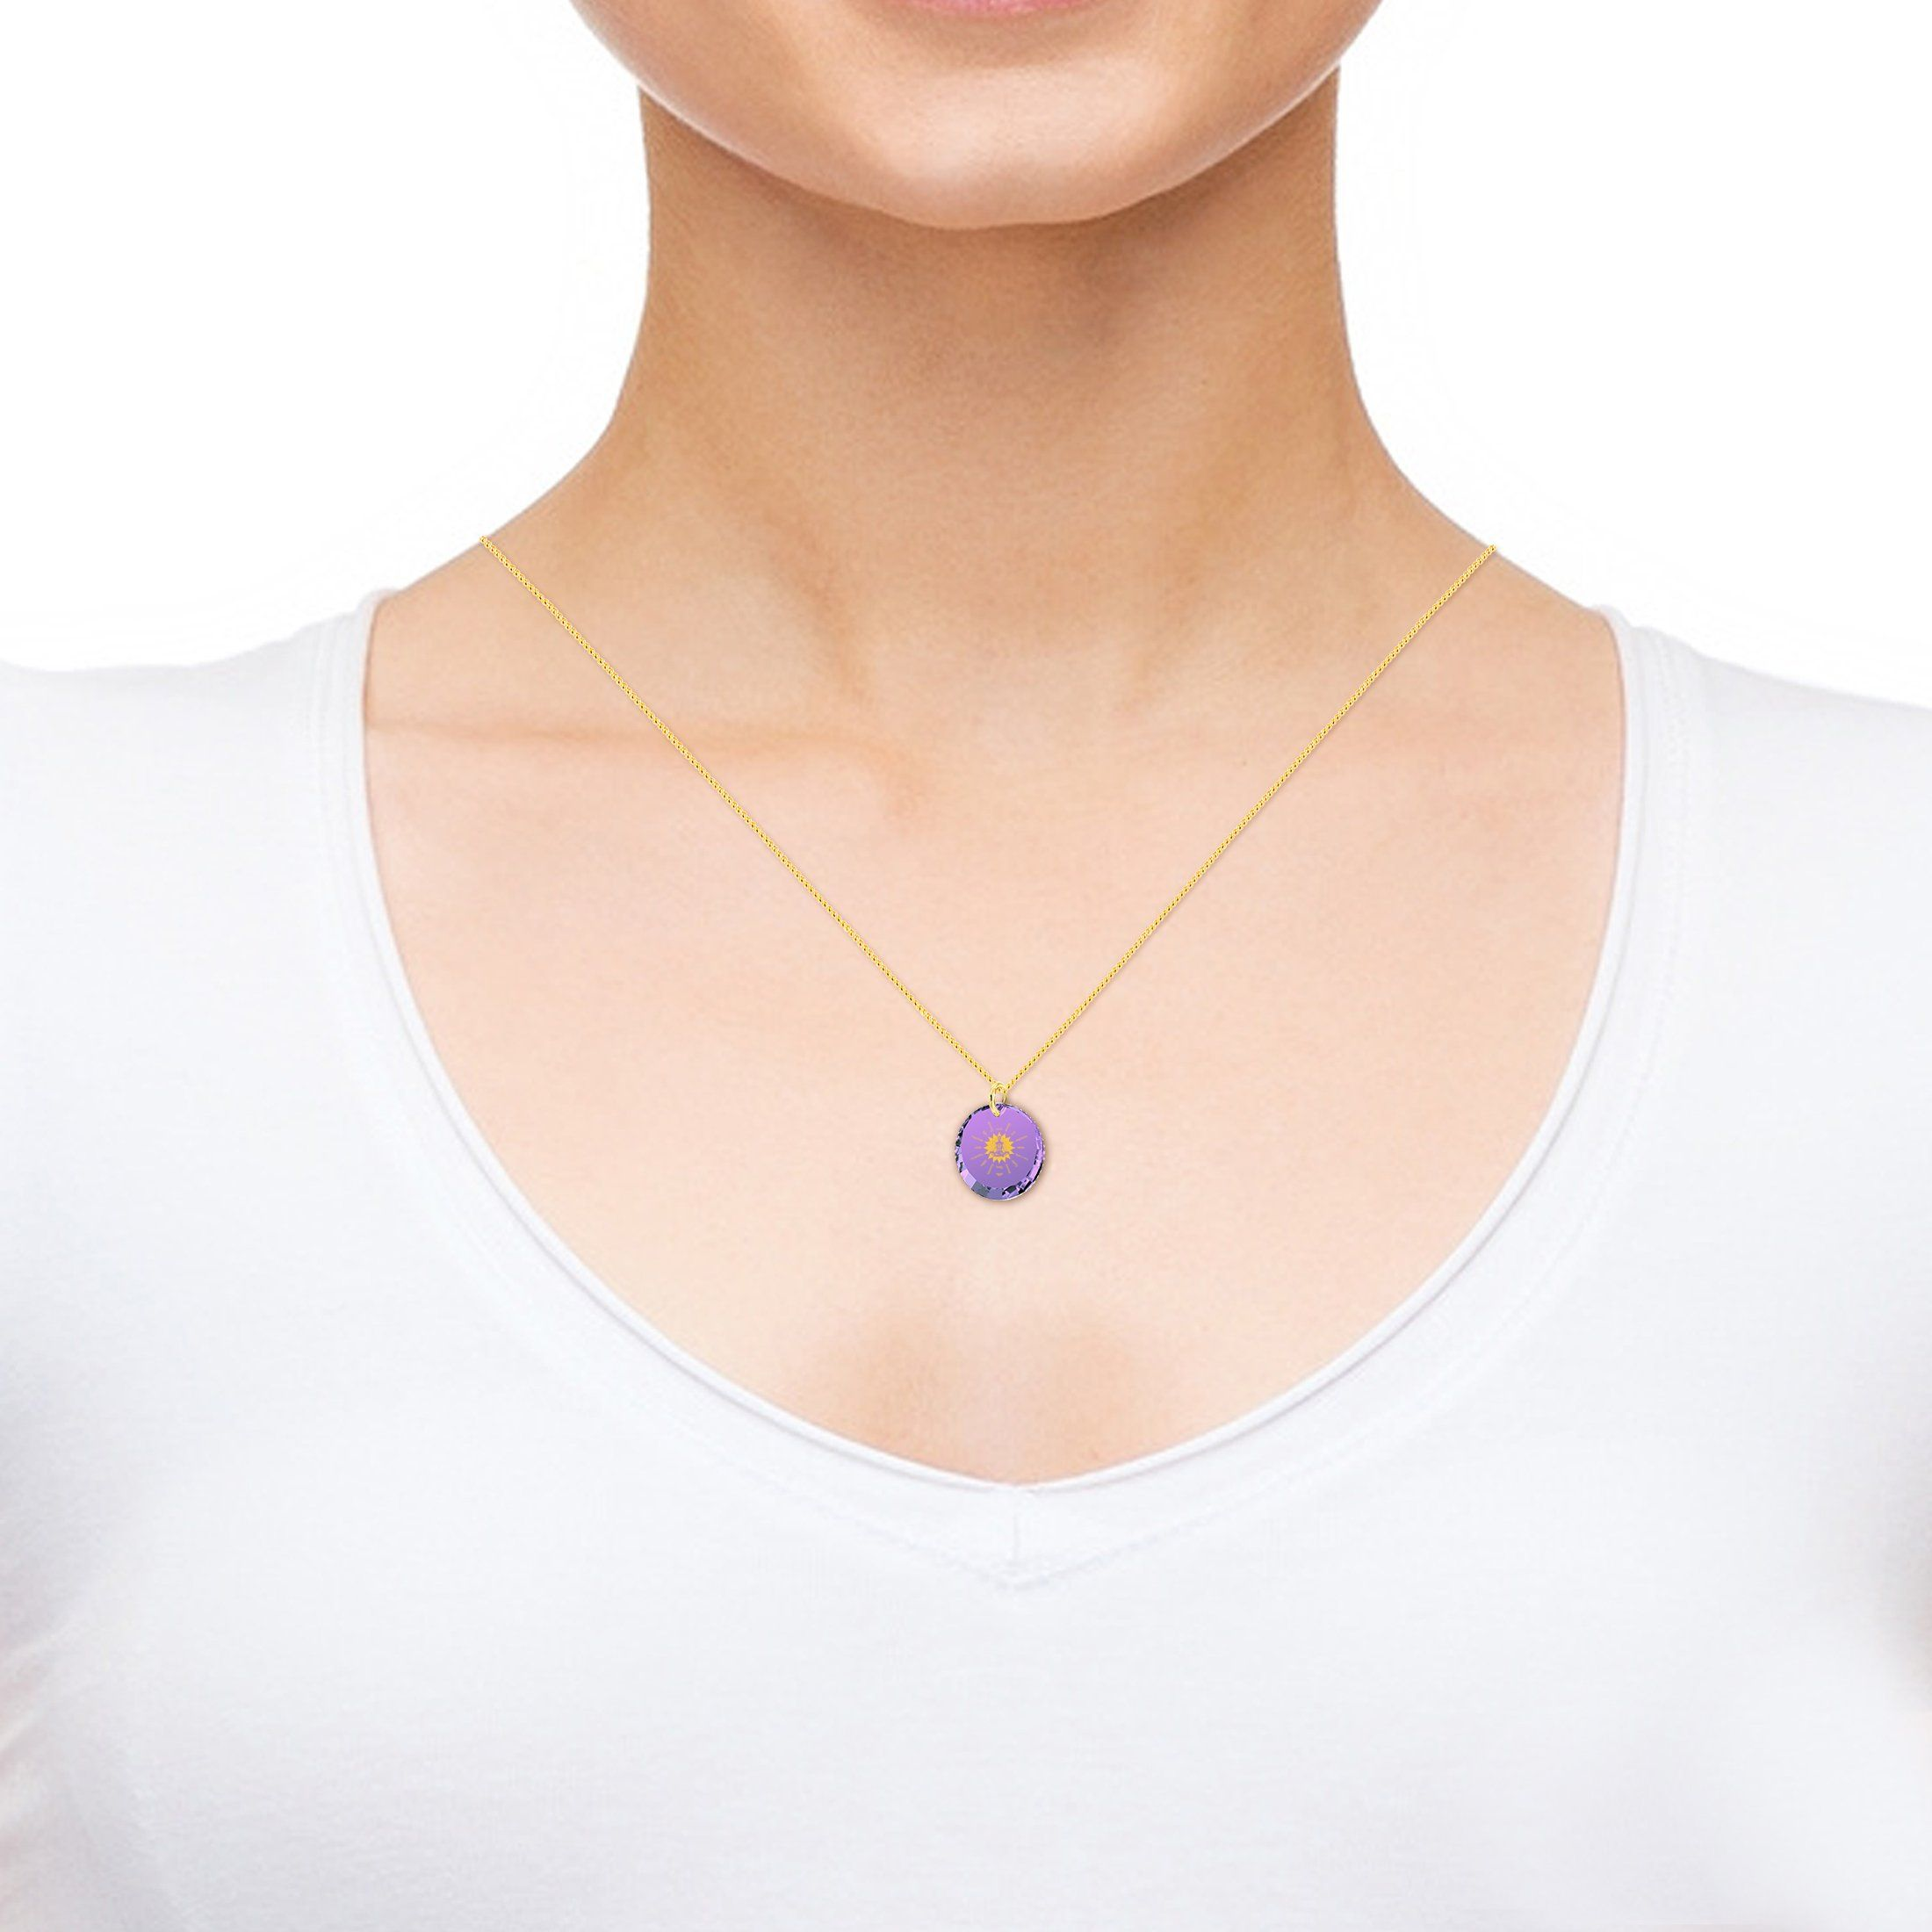 Meditation Necklace for Her, Nano Jewelry